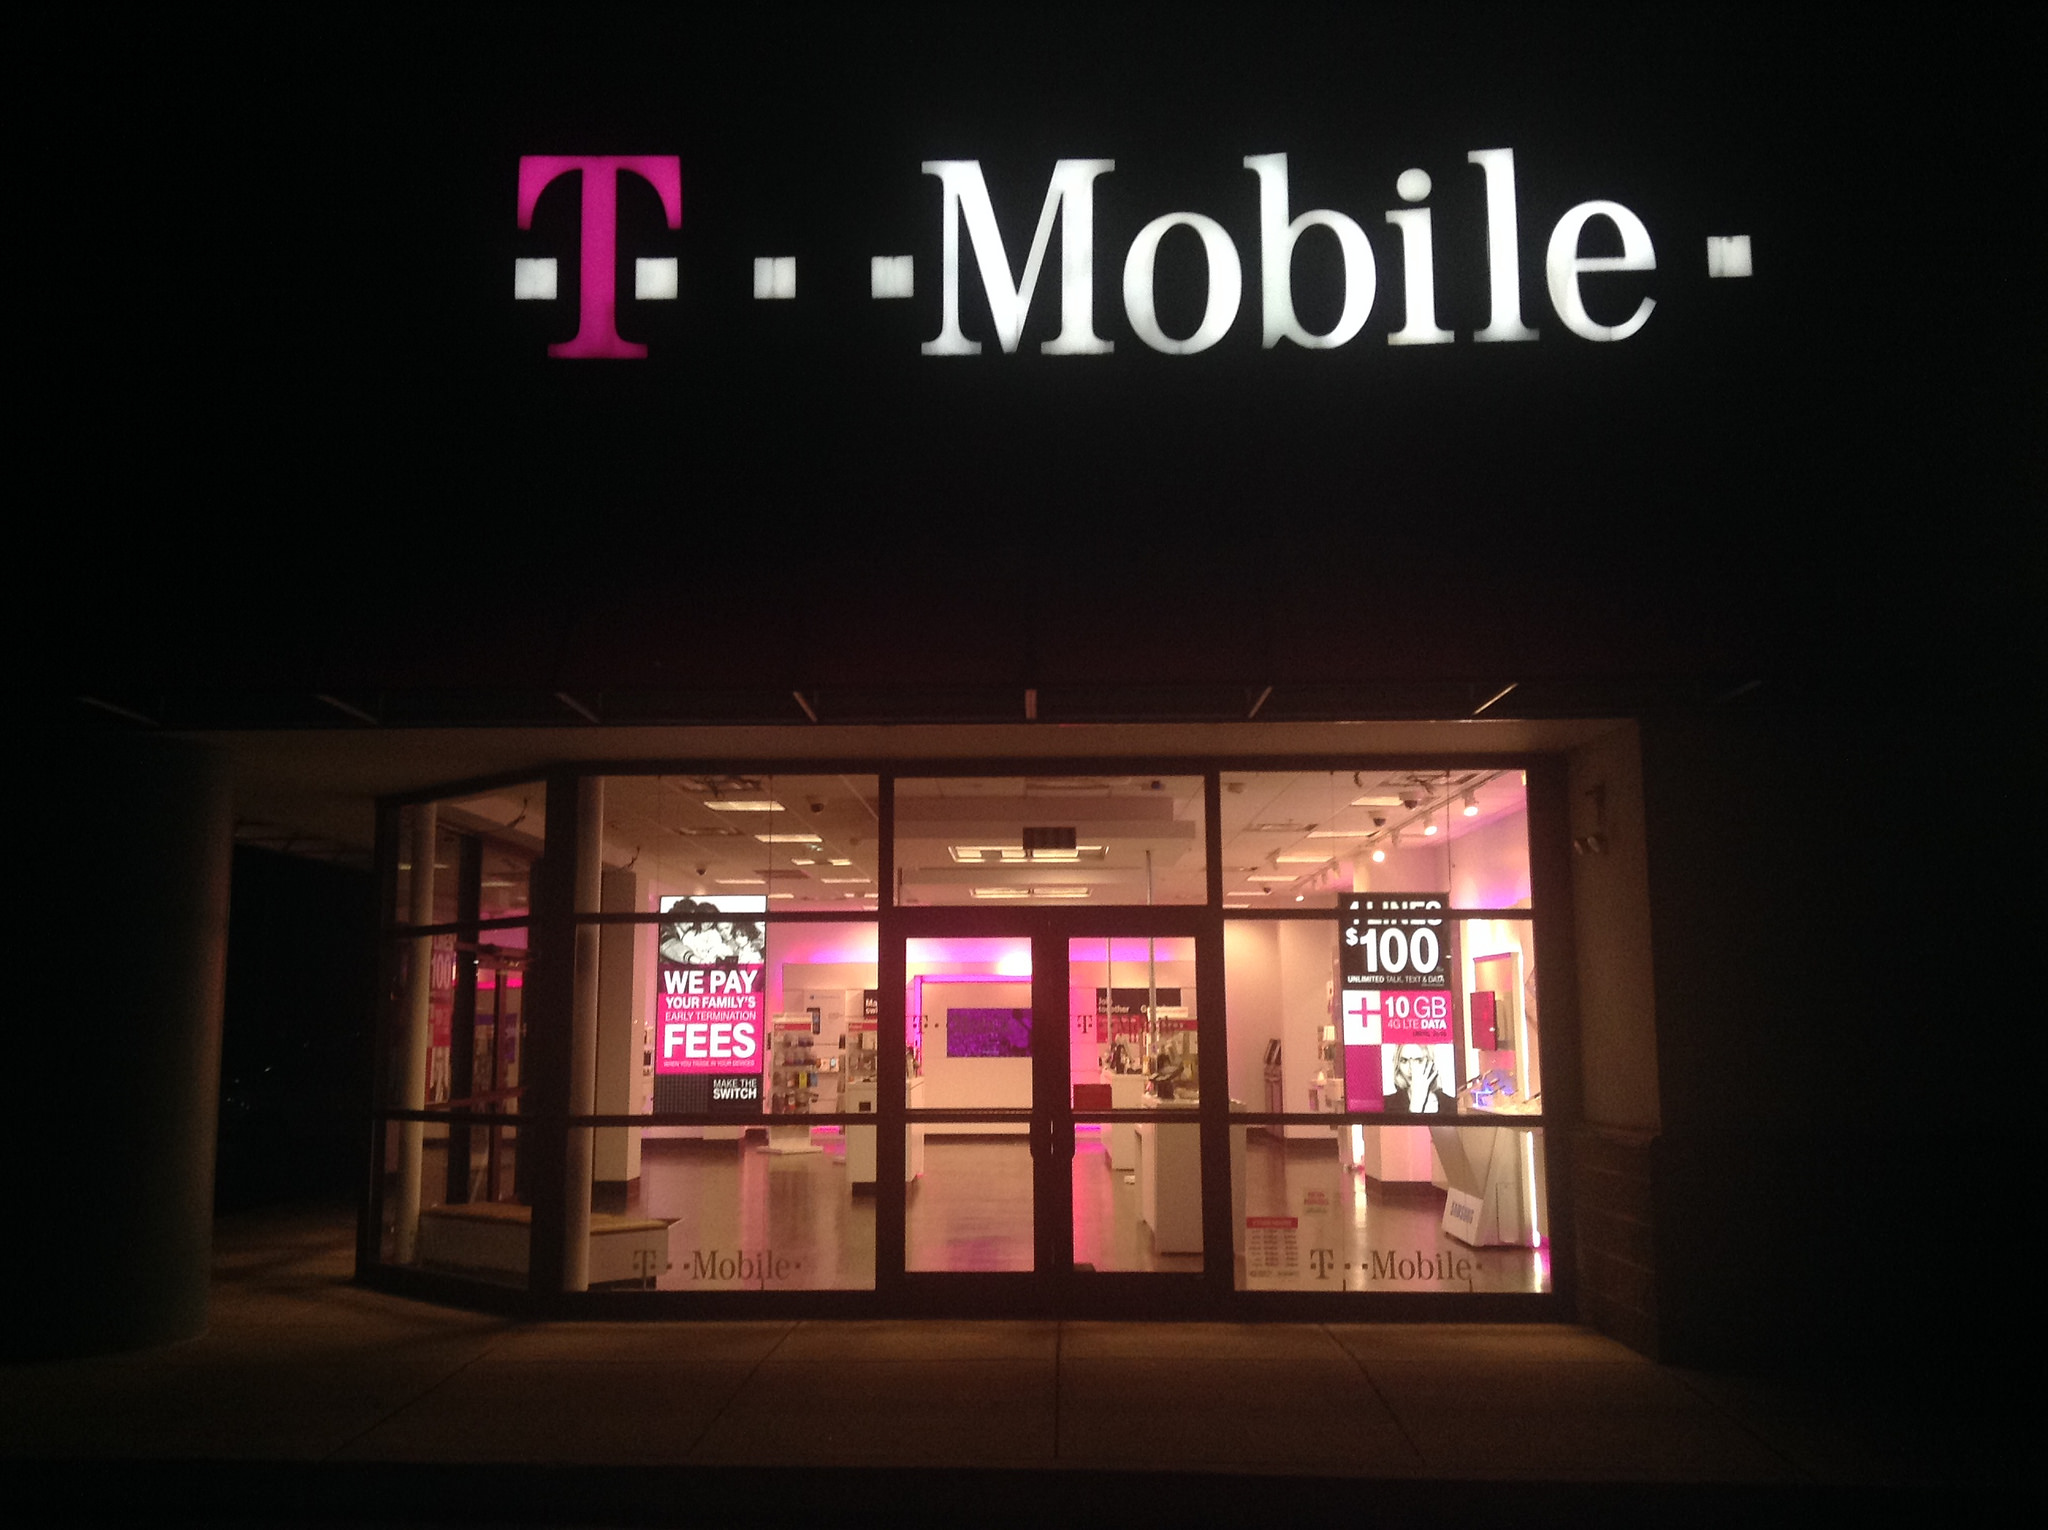 Talks over T-Mobile and Sprint merging